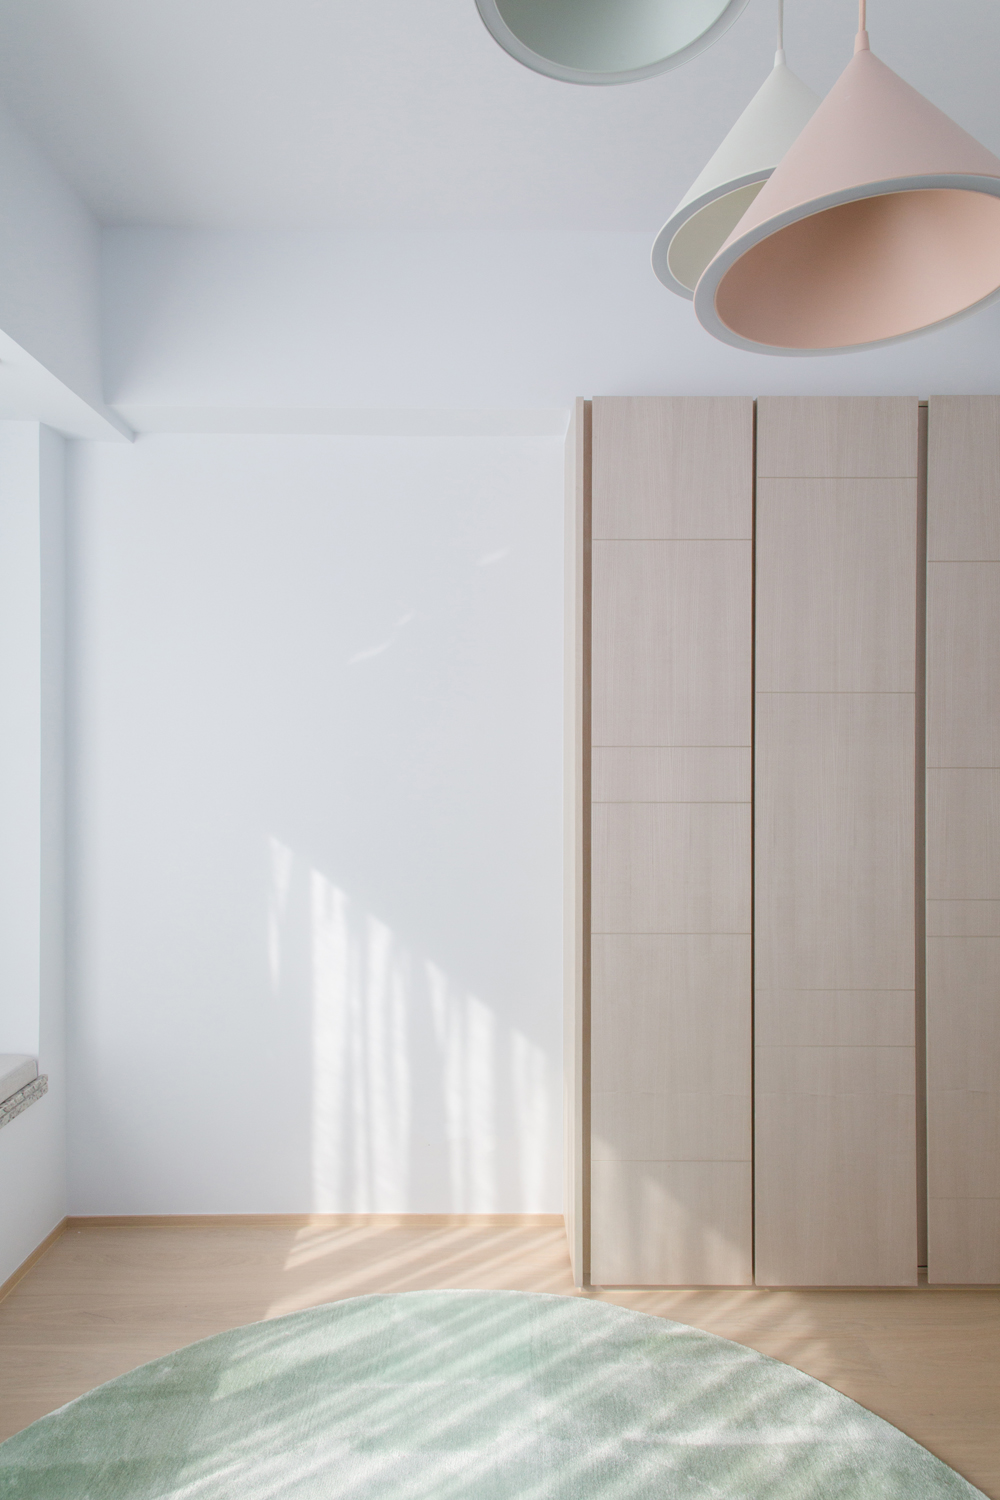 Light and Shadows | Baby's Room Kennedy Park | Hong Kong Interiors Photography